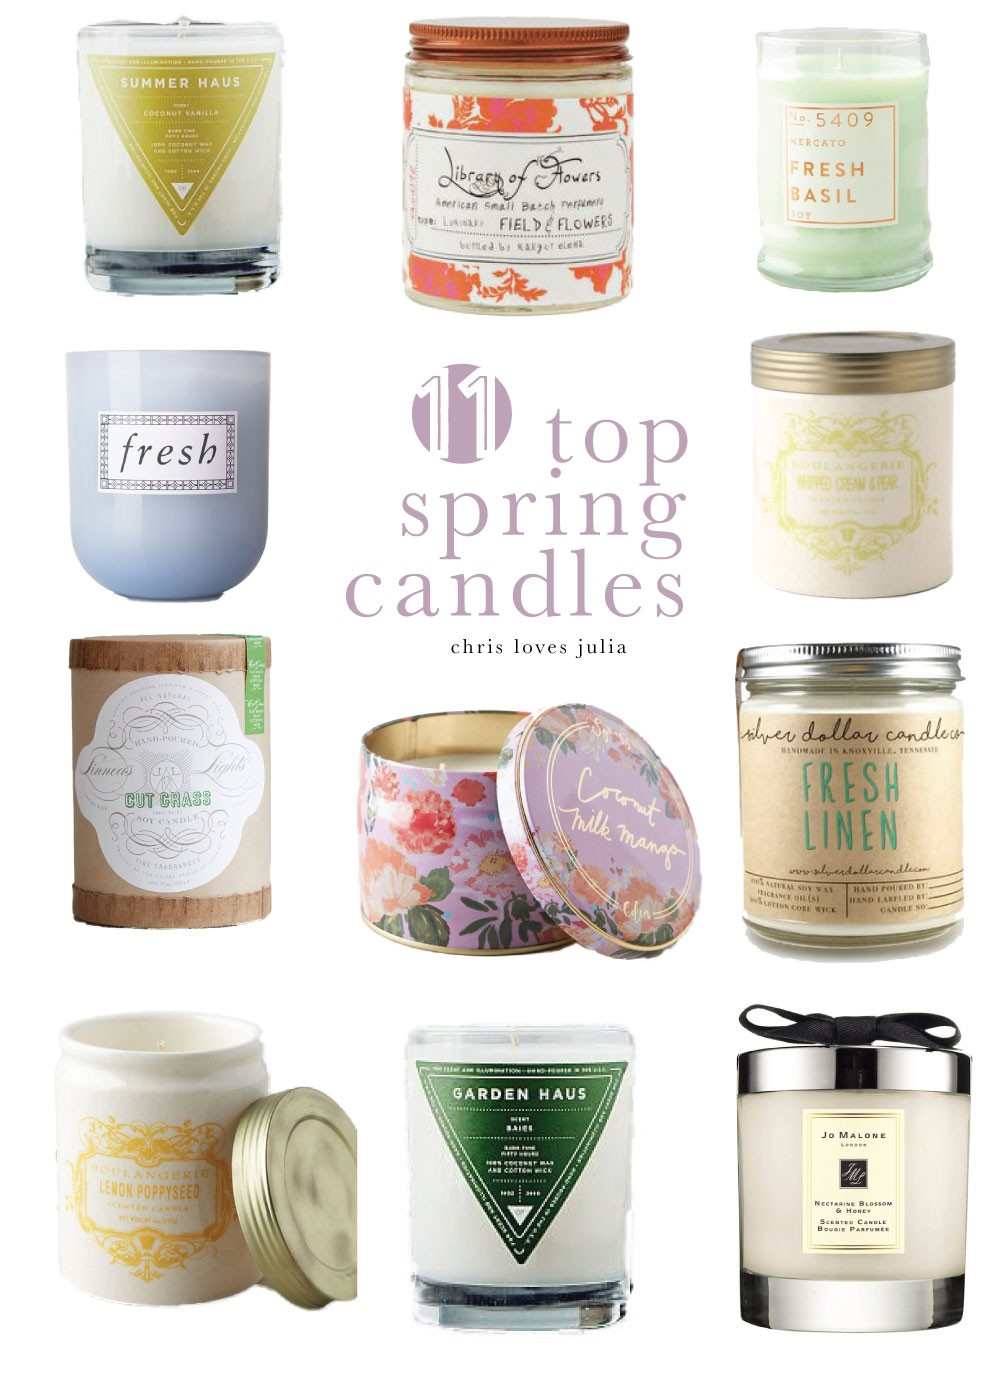 You Can Click On The Candles Above To Go Directly Purchase Page Lavender One In Center Is My Personal Favorite And Mega Right